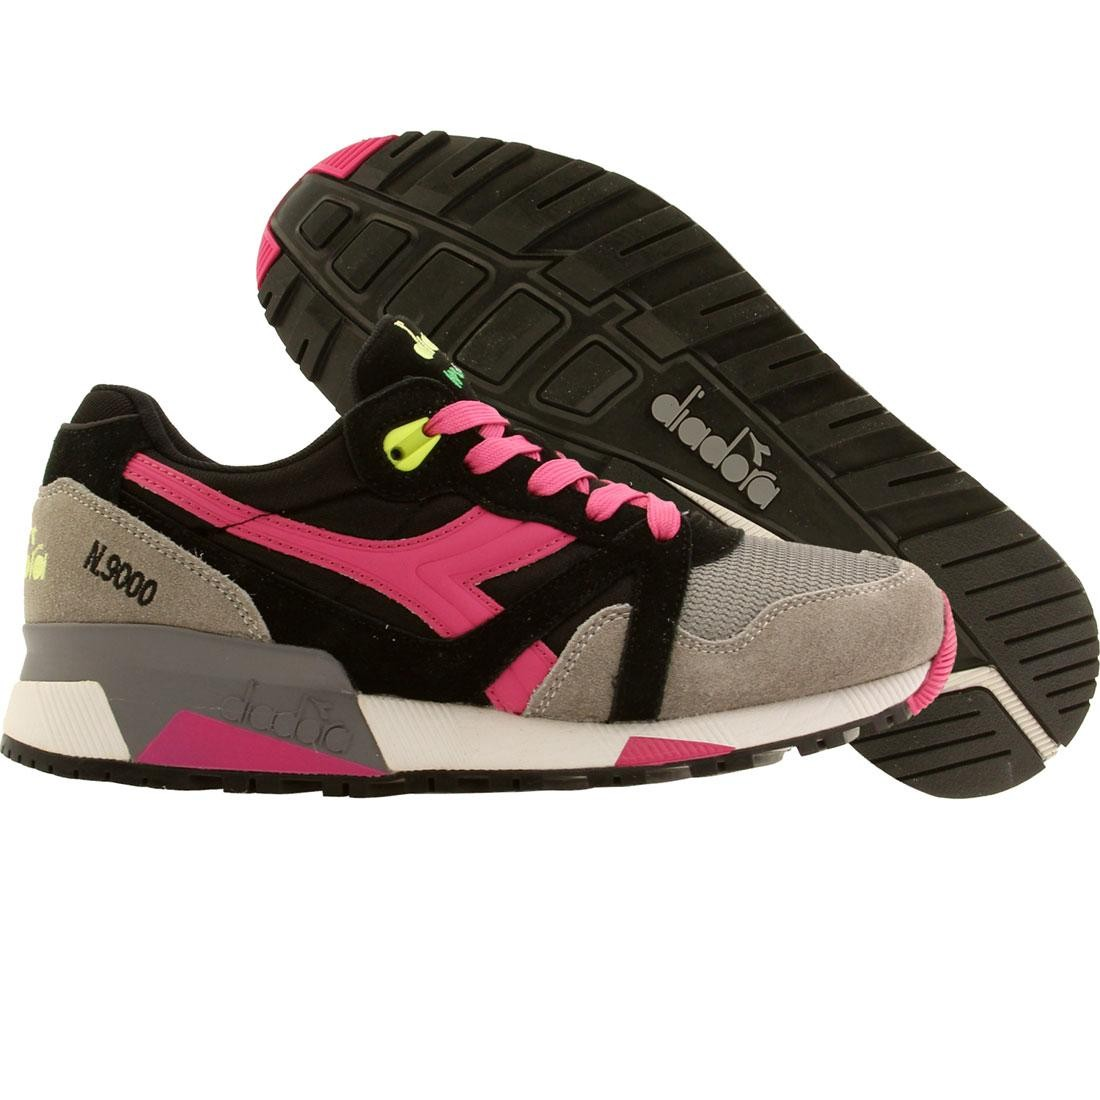 【海外限定】GRAY灰色 グレイ 靴 スニーカー 【 GREY DIADORA WOMEN N9000 NYL BLACK ICE MAGENTA 】